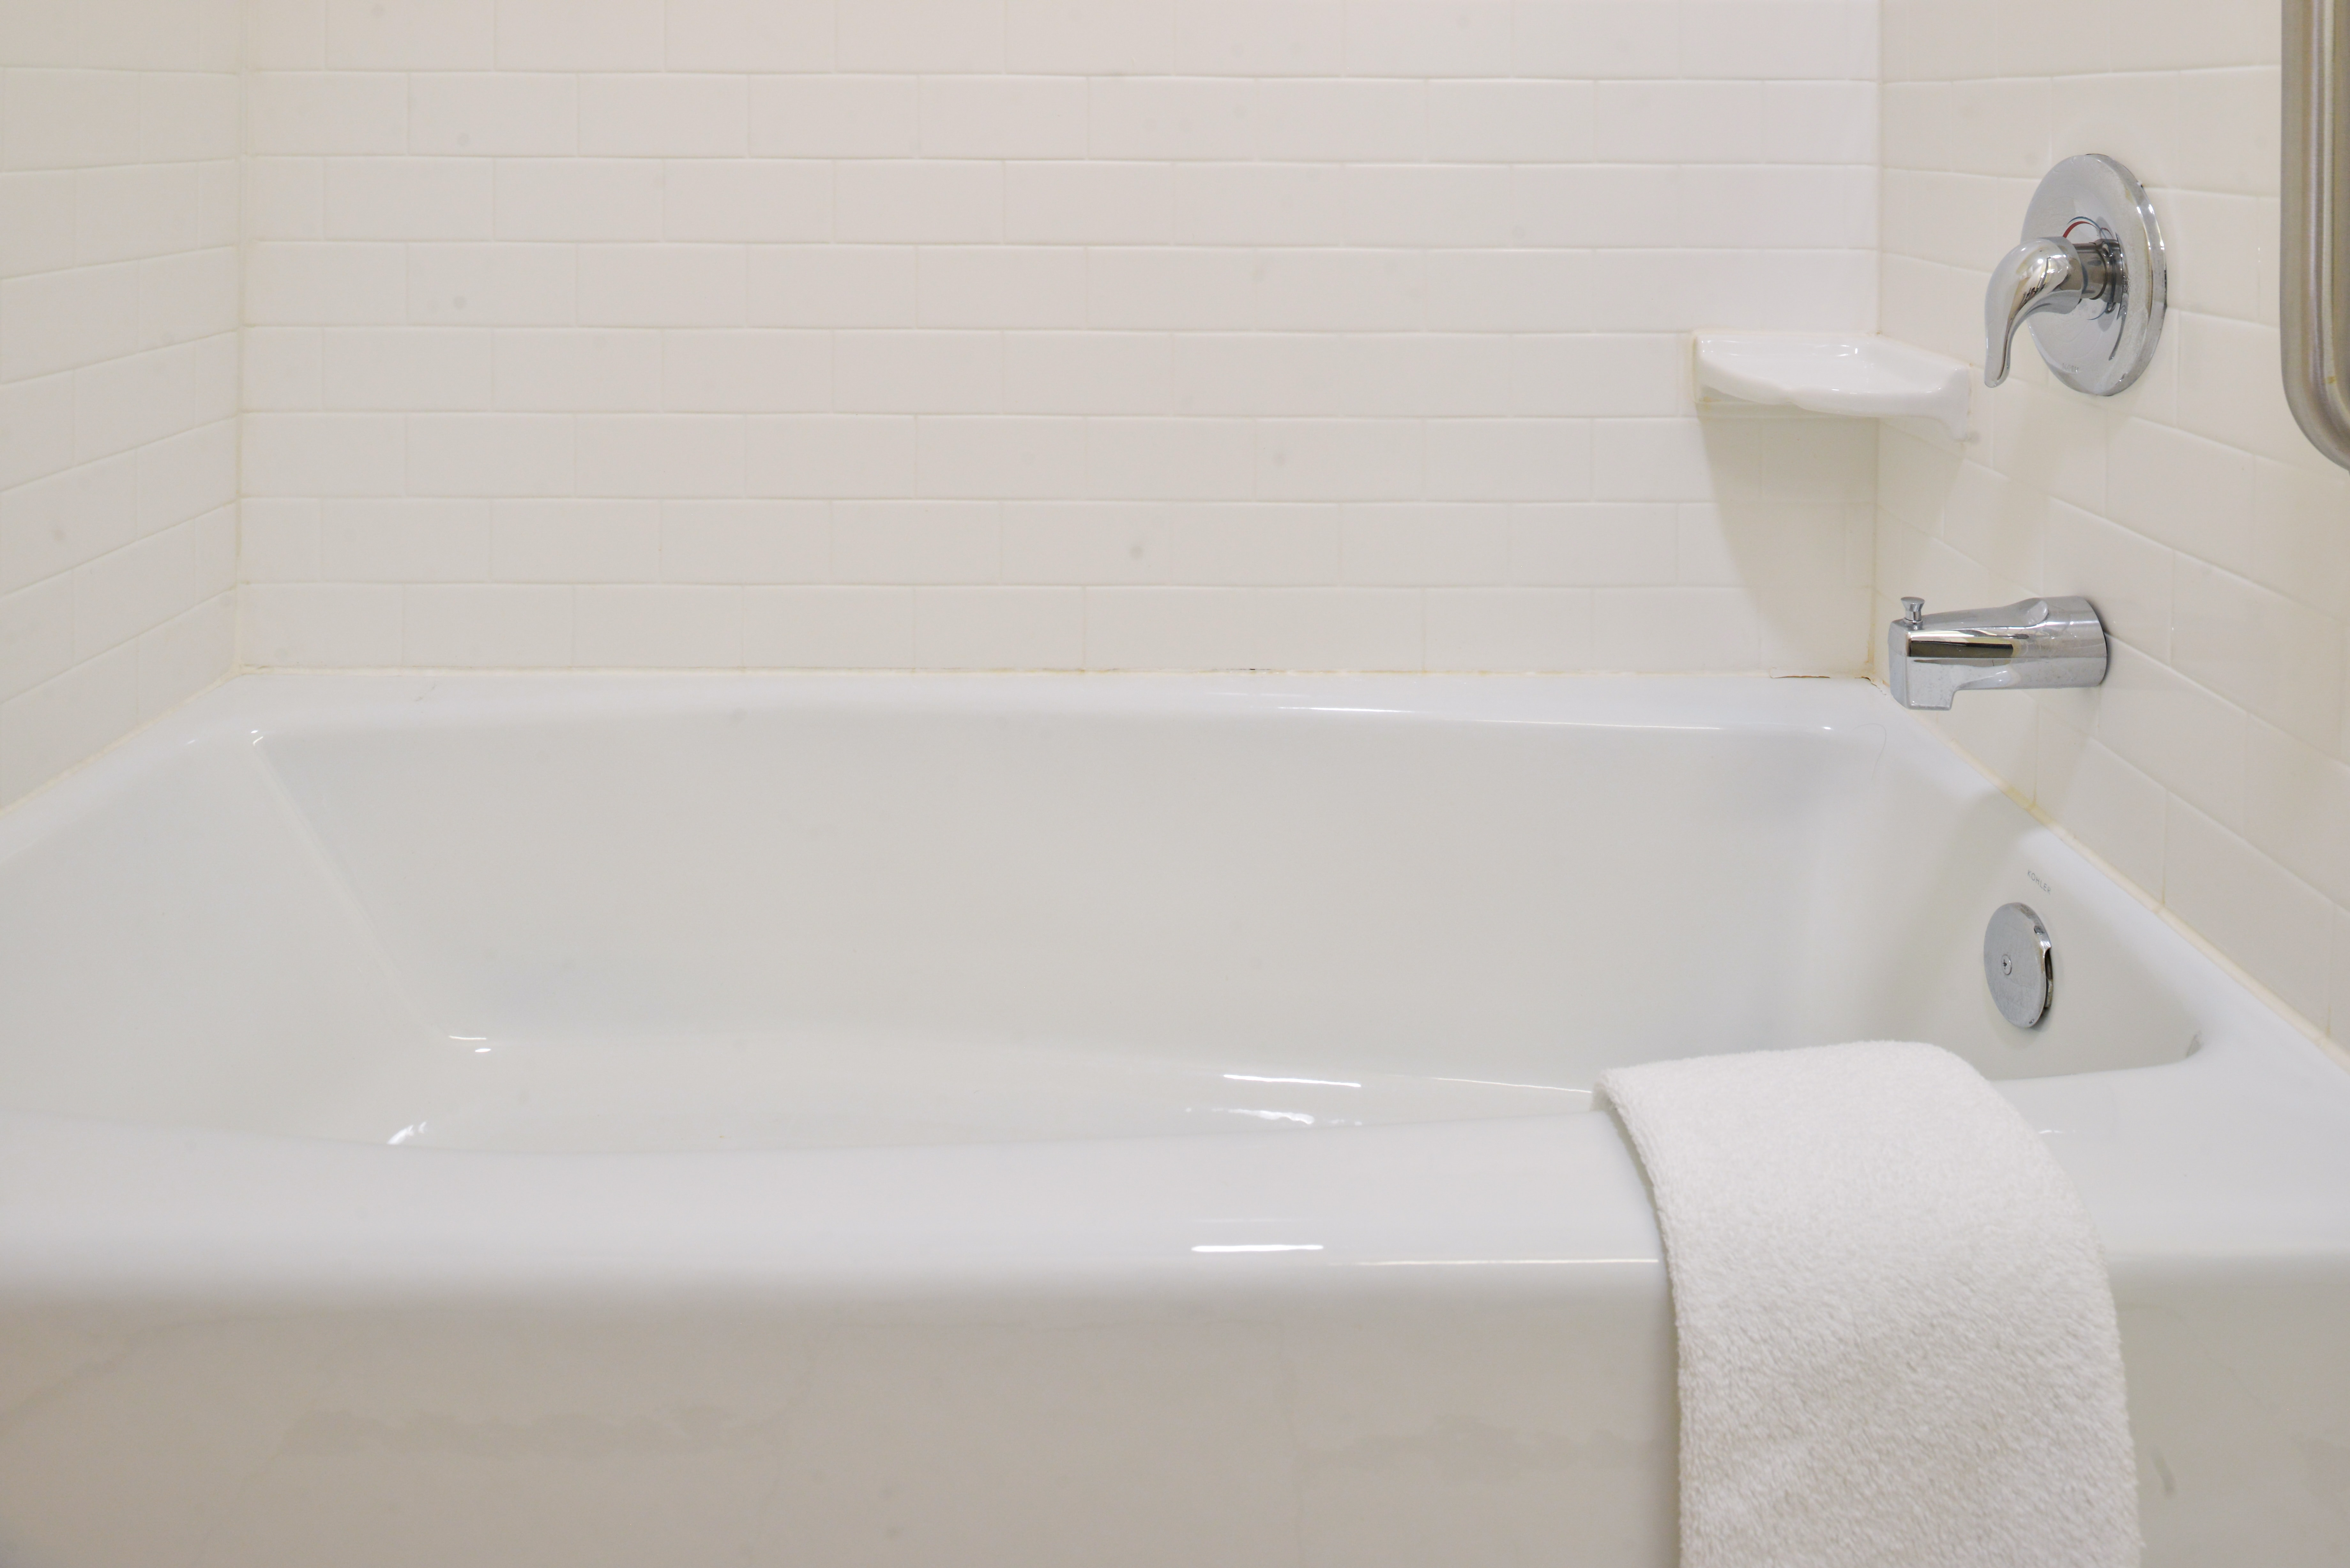 https://www.hotelsbyday.com/_data/default-hotel_image/3/15129/fis-cidcr-bathroom7.jpg